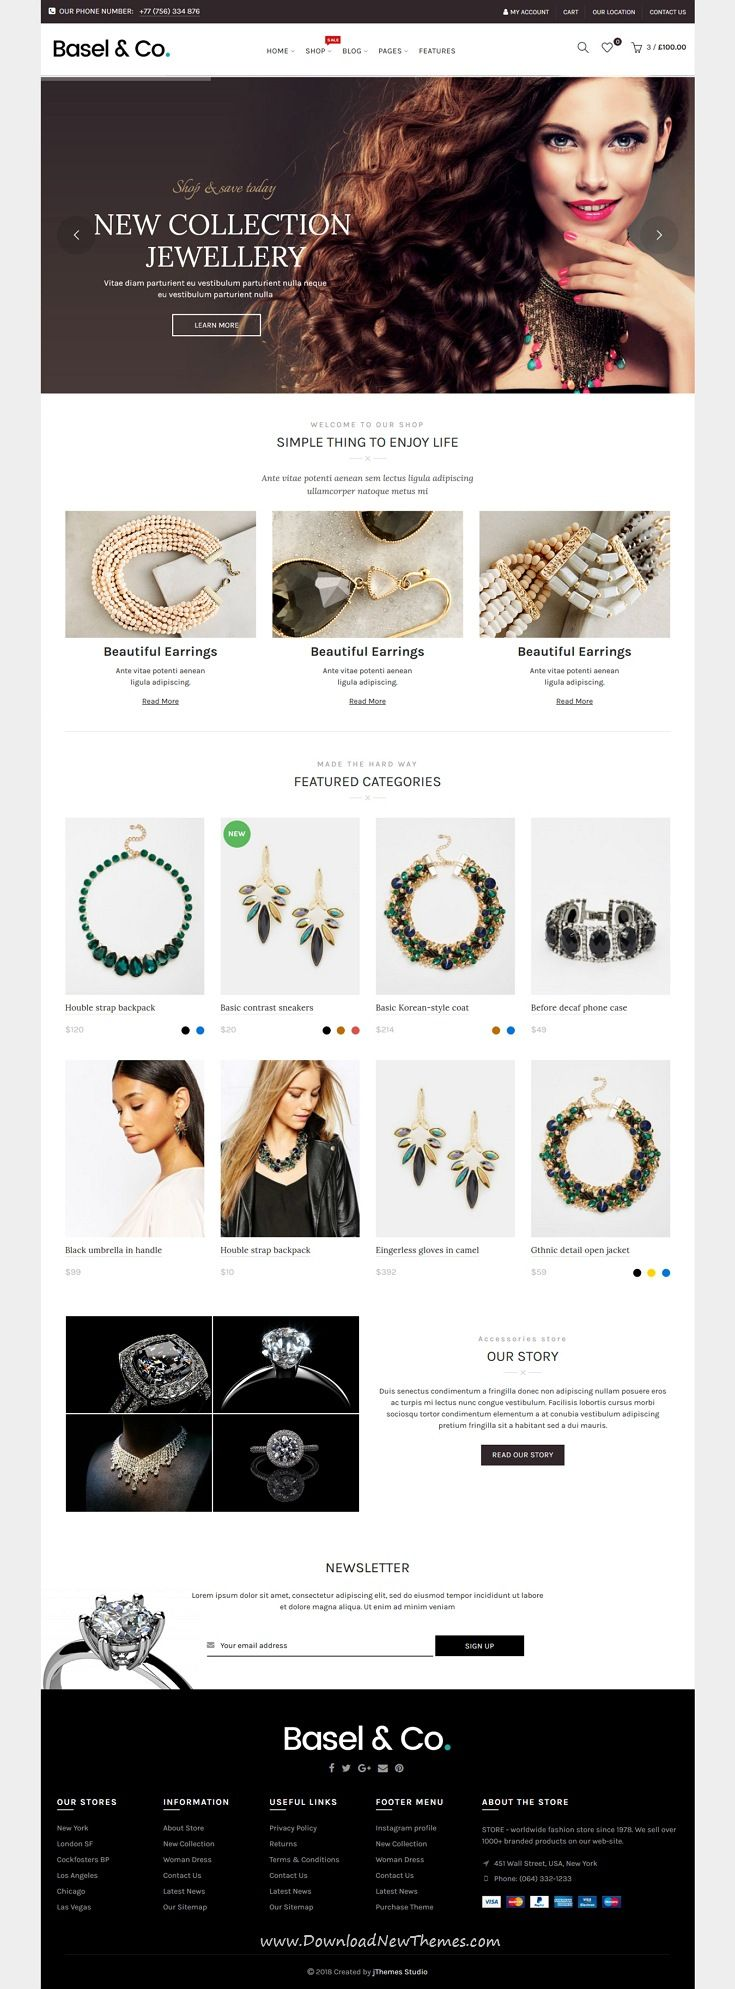 Basel is clean and modern design responsive bootstrap HTML5 #template for stunning #jewellery shop #eCommerce website with 10 niche homepage layouts to live preview & download click on image or Visit